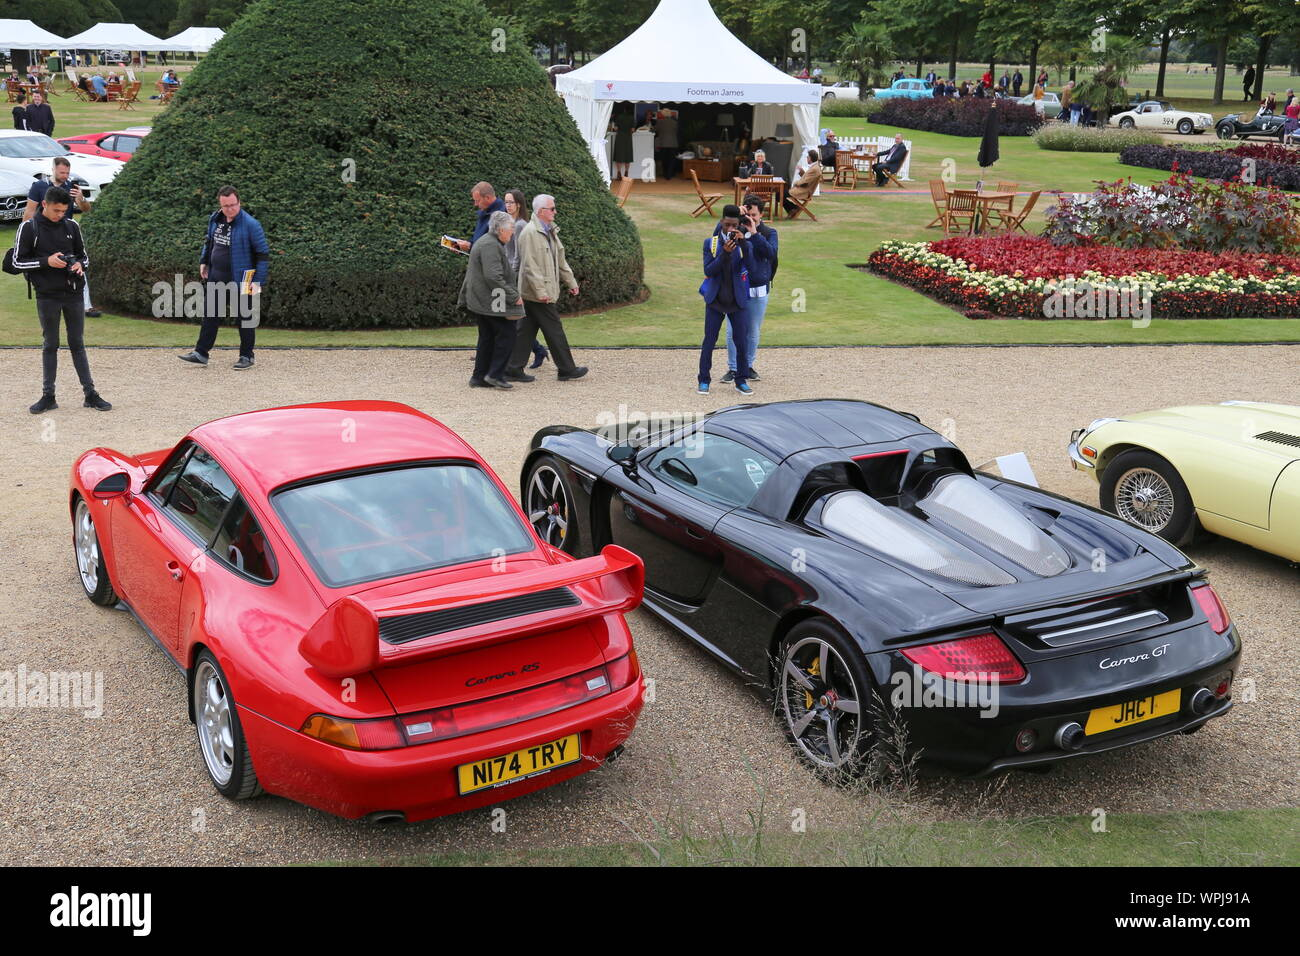 Porsche Carrera Rs And Porsche Carrera Gt Concours Of Elegance 2019 Hampton Court Palace East Molesey Surrey England Great Britain Uk Europe Stock Photo Alamy